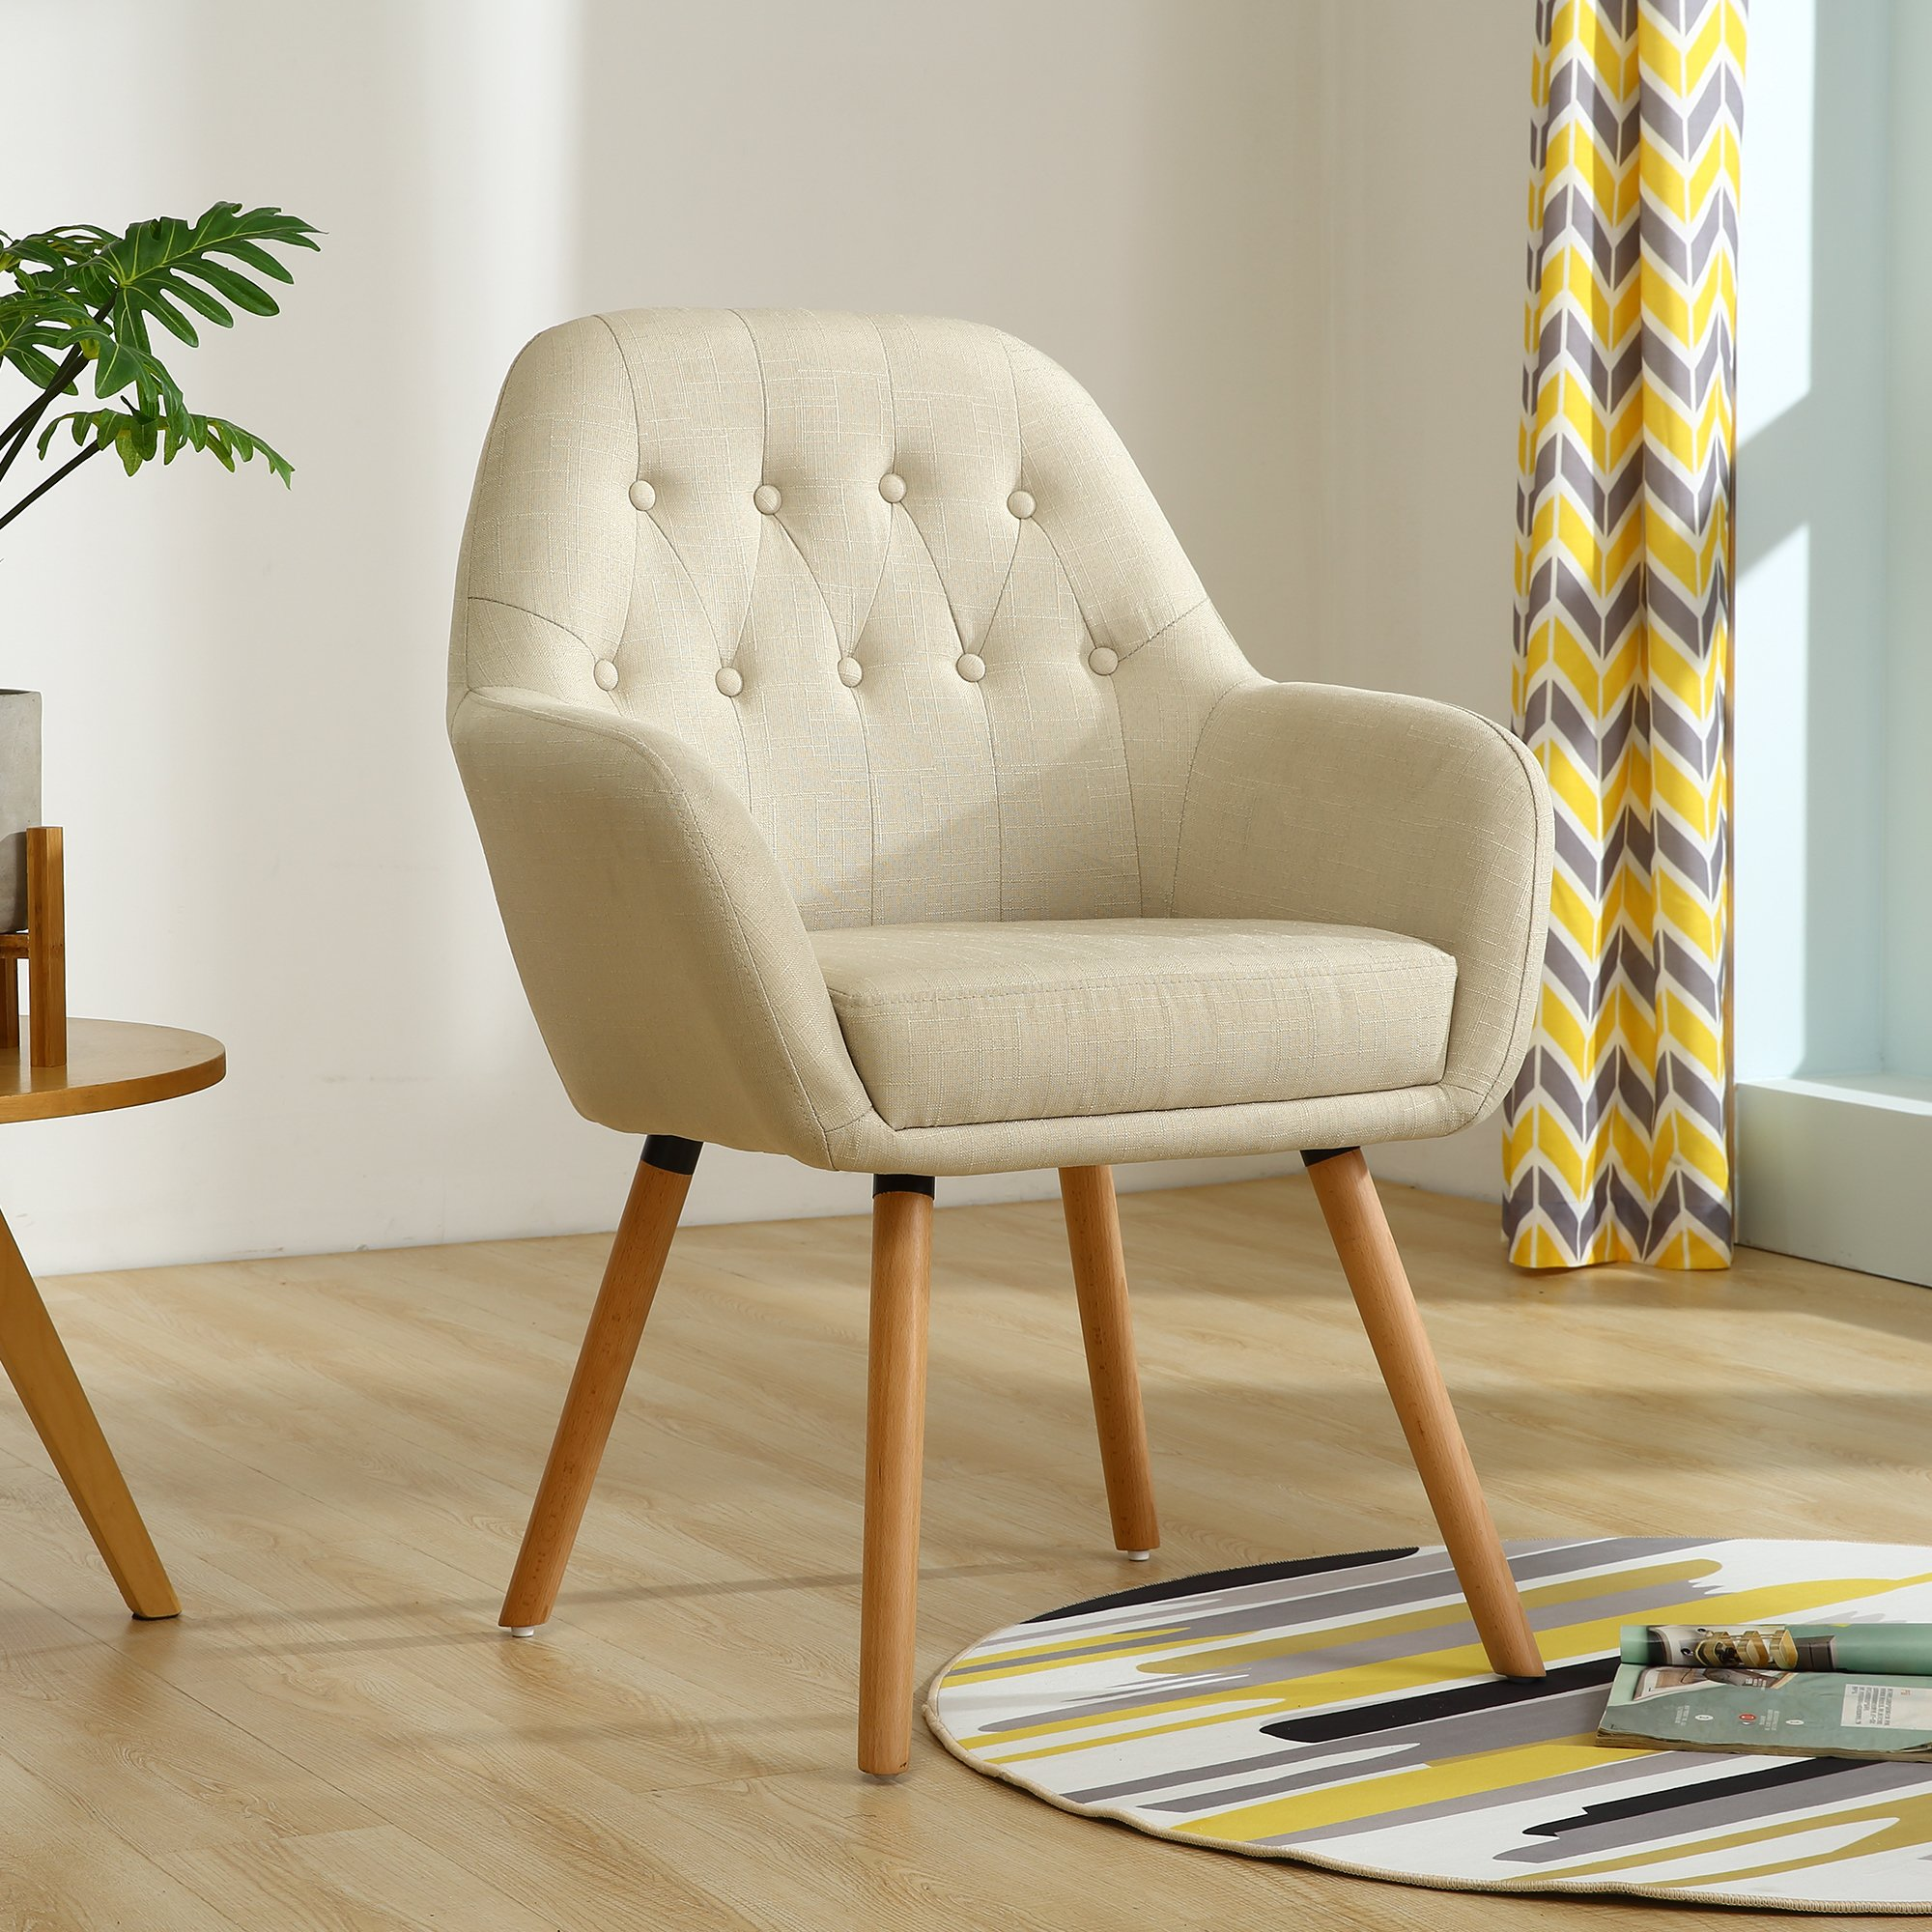 LSSBOUGHT Contemporary Stylish Button-Tufted Upholstered Accent Chair with Solid Wood Legs (Beige)